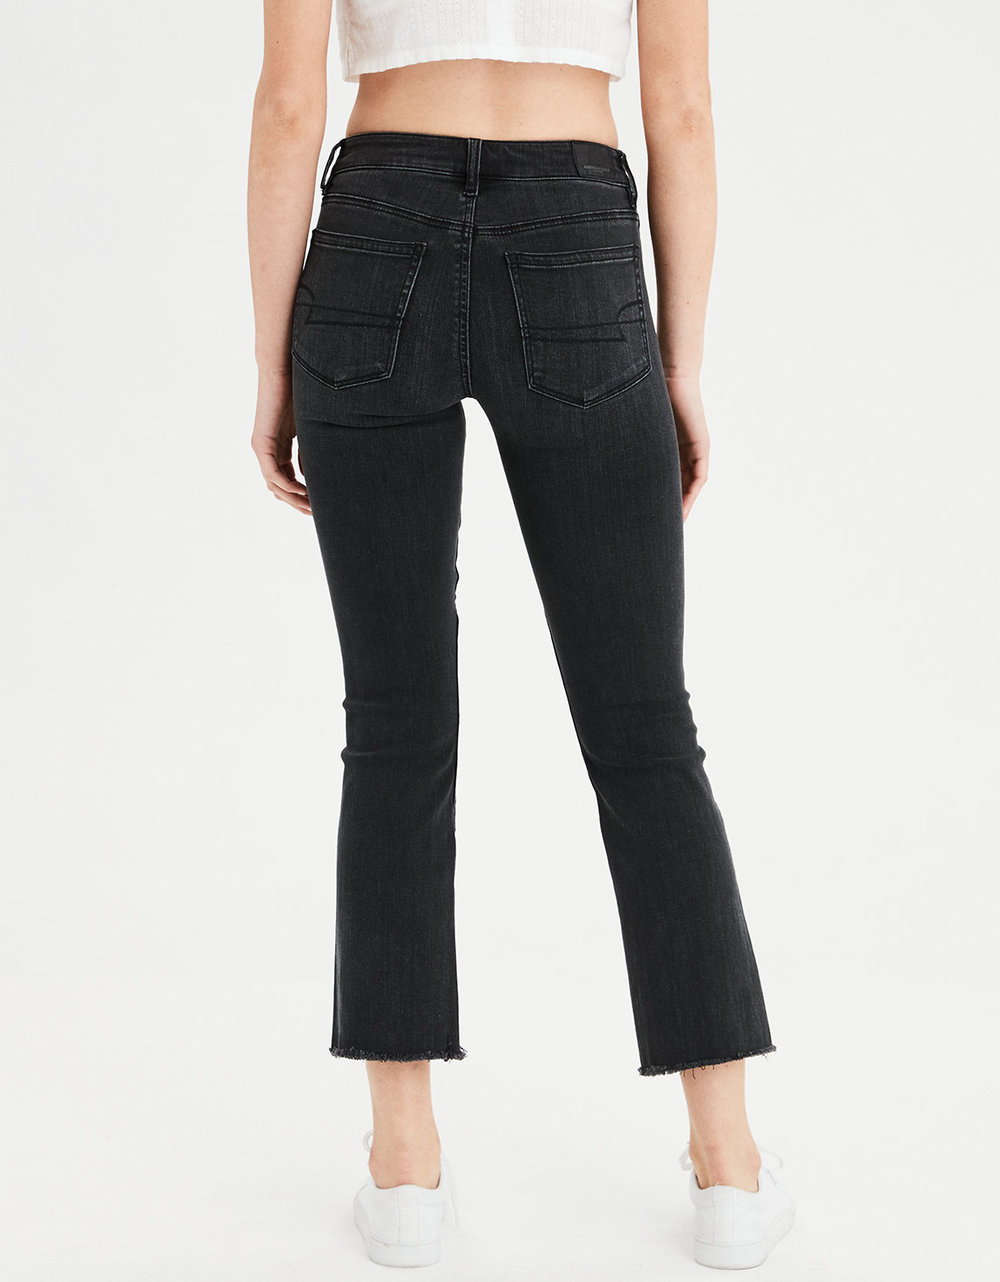 HIGH-WAISTED CROP FLARE JEAN. Available in long. American Eagle. Was: $49. Now: $37.